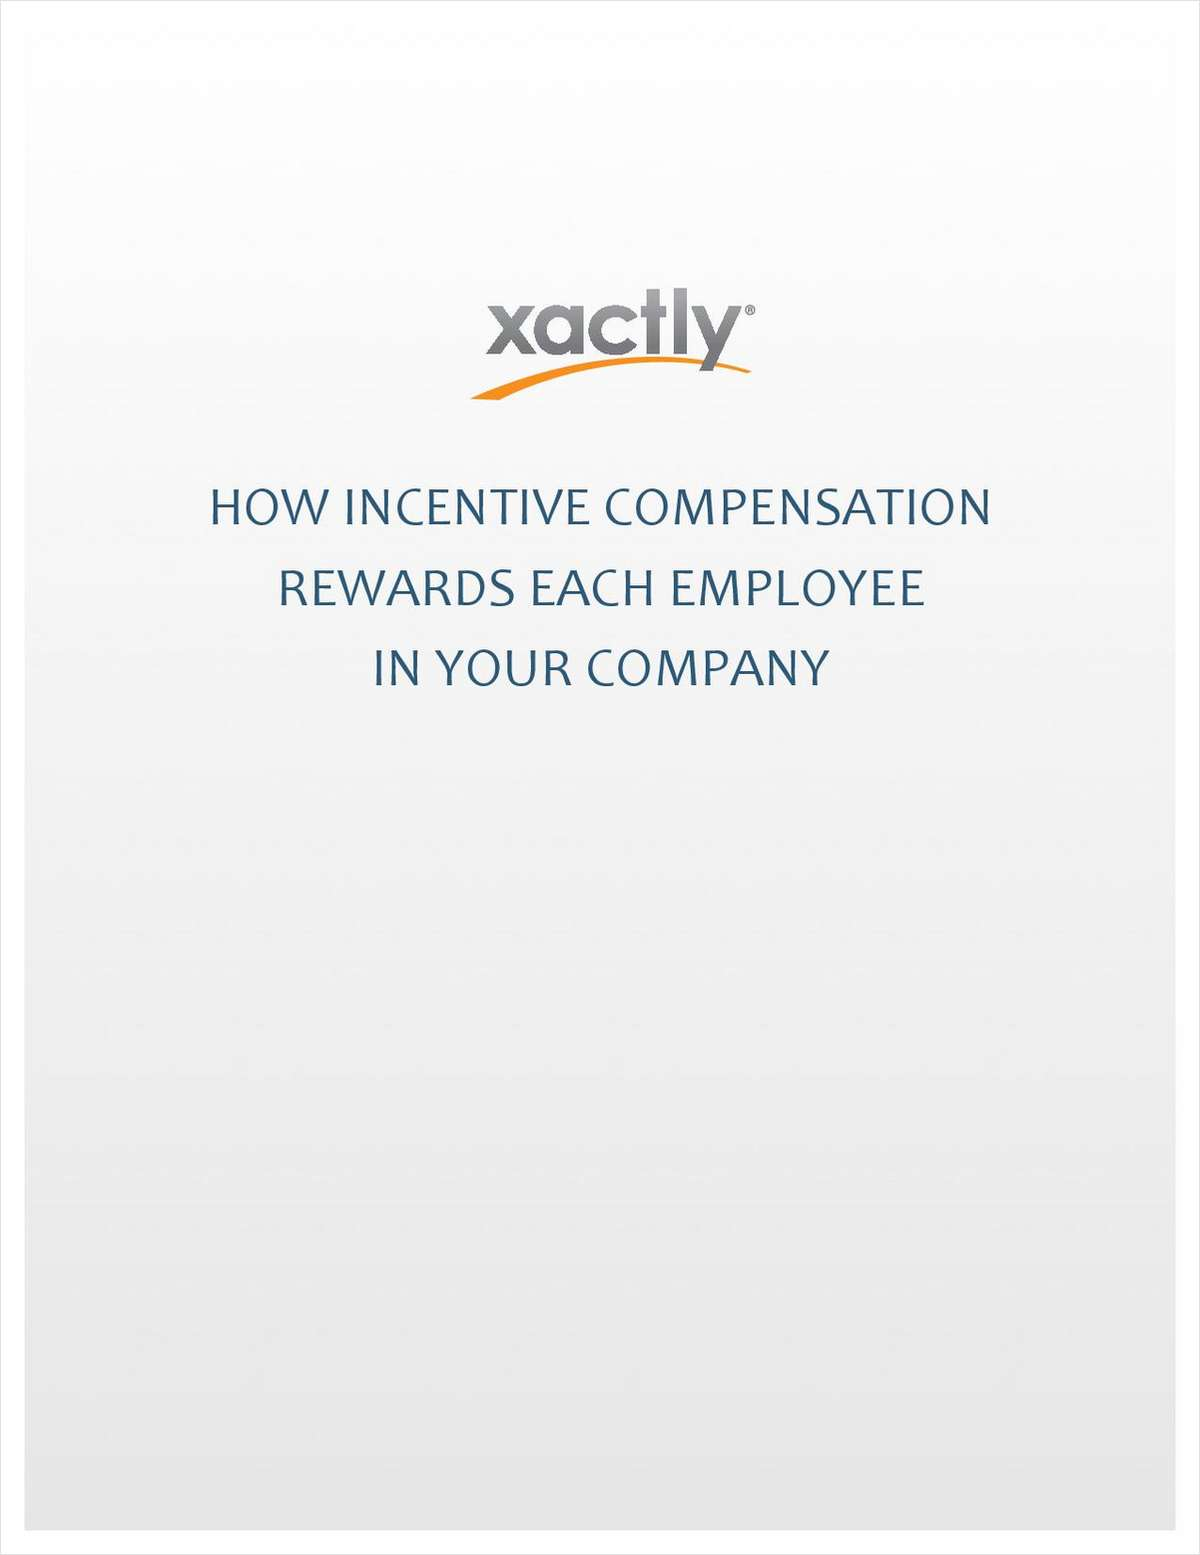 How Incentive Compensation Rewards Each Employee in Your Company